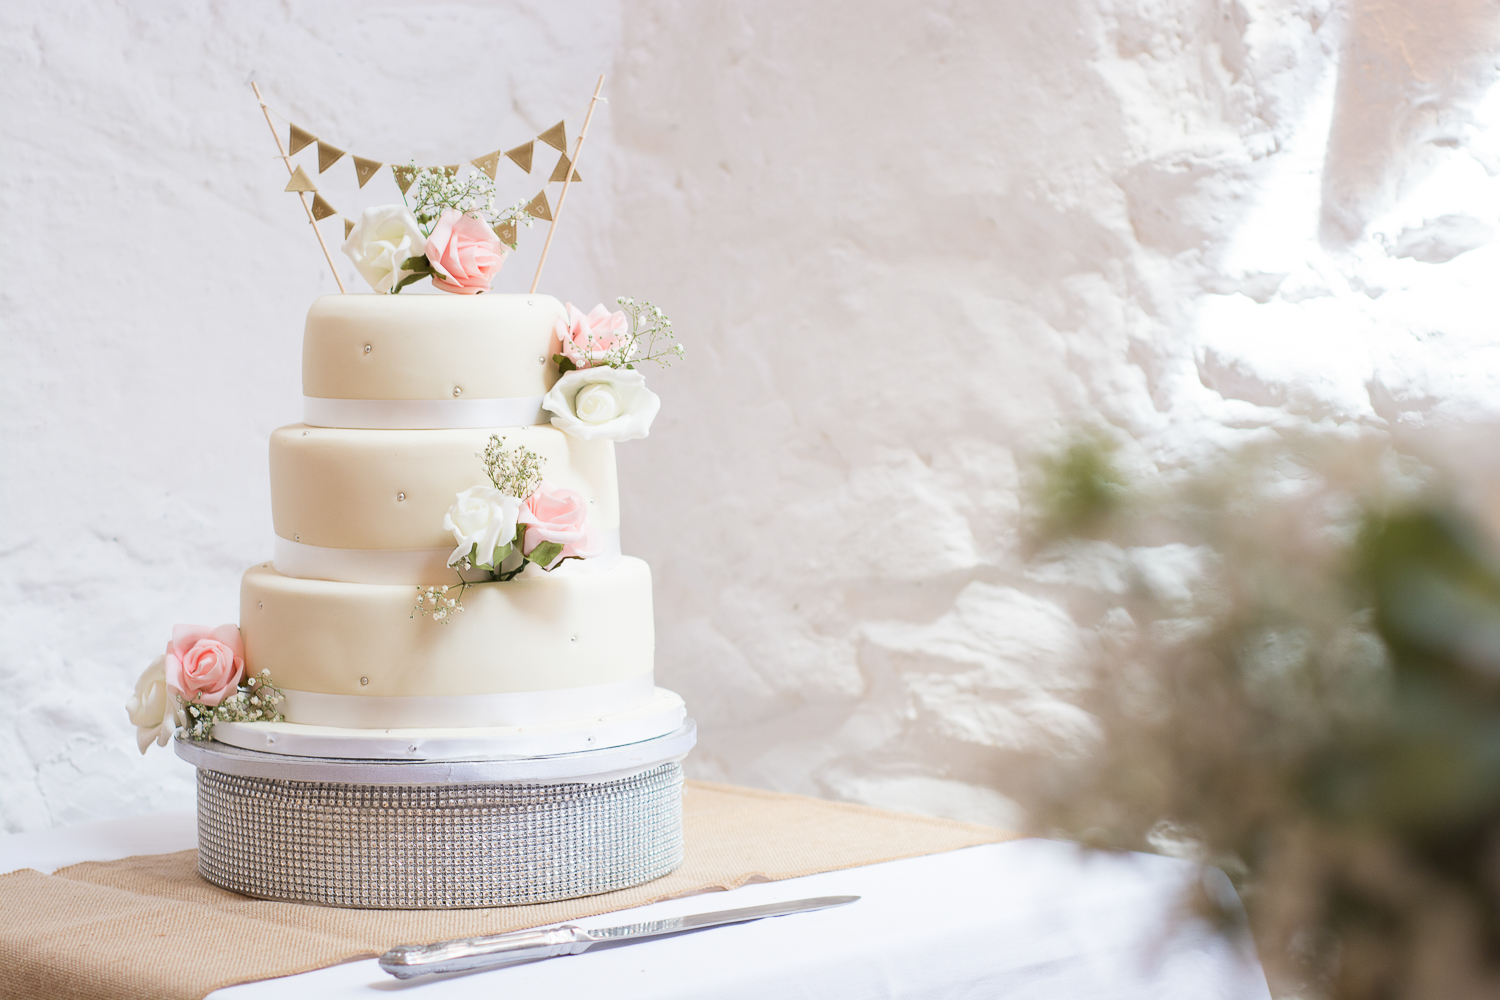 Lovely wedding cake by Ben's Bakes at the Bickley Mill Wedding Venue in Devon